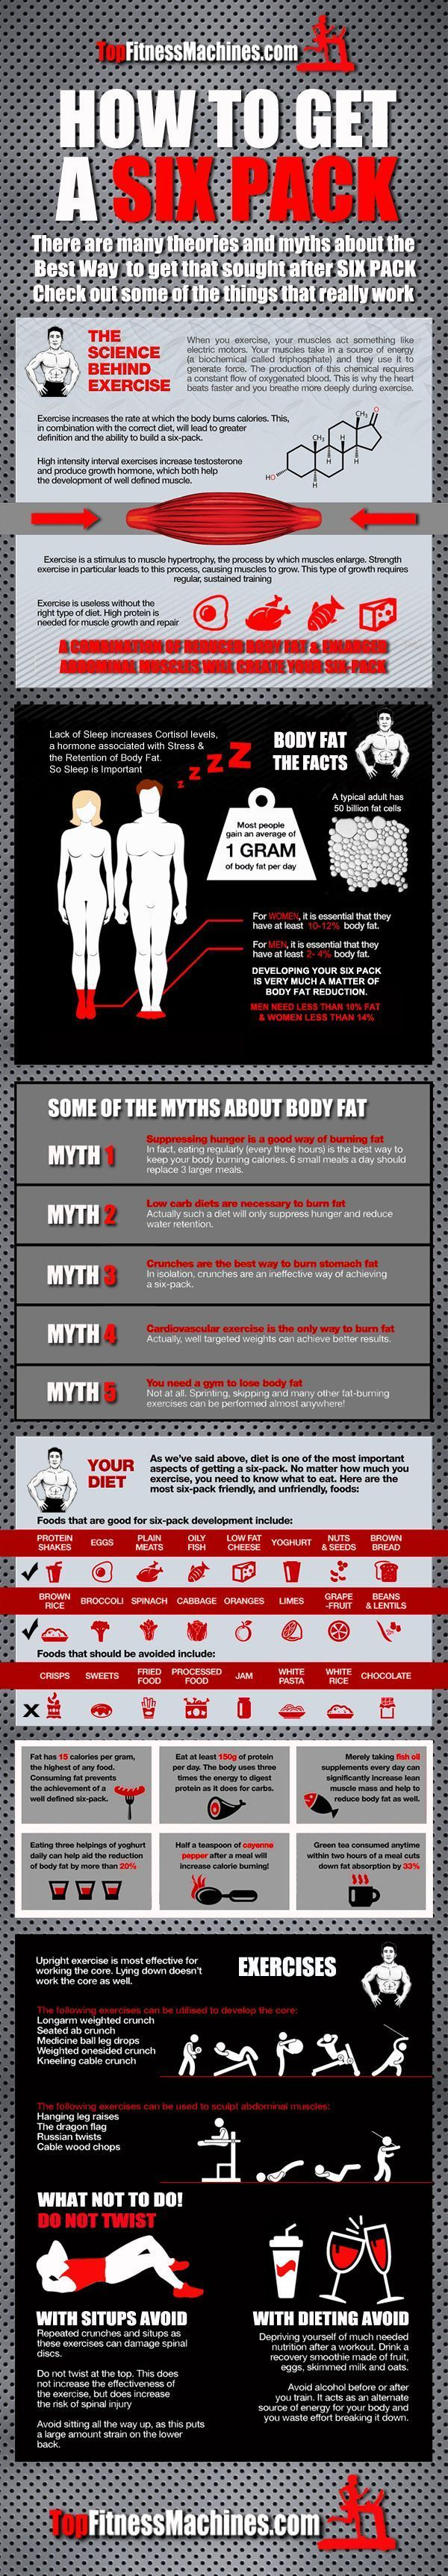 See more here ► https://www.youtube.com/watch?v=ITkJDrQsNKg Tags: how to loss weight without exercise, weight loss tips without exercise, weight loss diet without exercise - How to Build Your Abs & Get a Six Pack. Infographic with Tips and Dispelling some Myths www.TopFitnessMachines.com #six_pack #fitness #Abs_Training